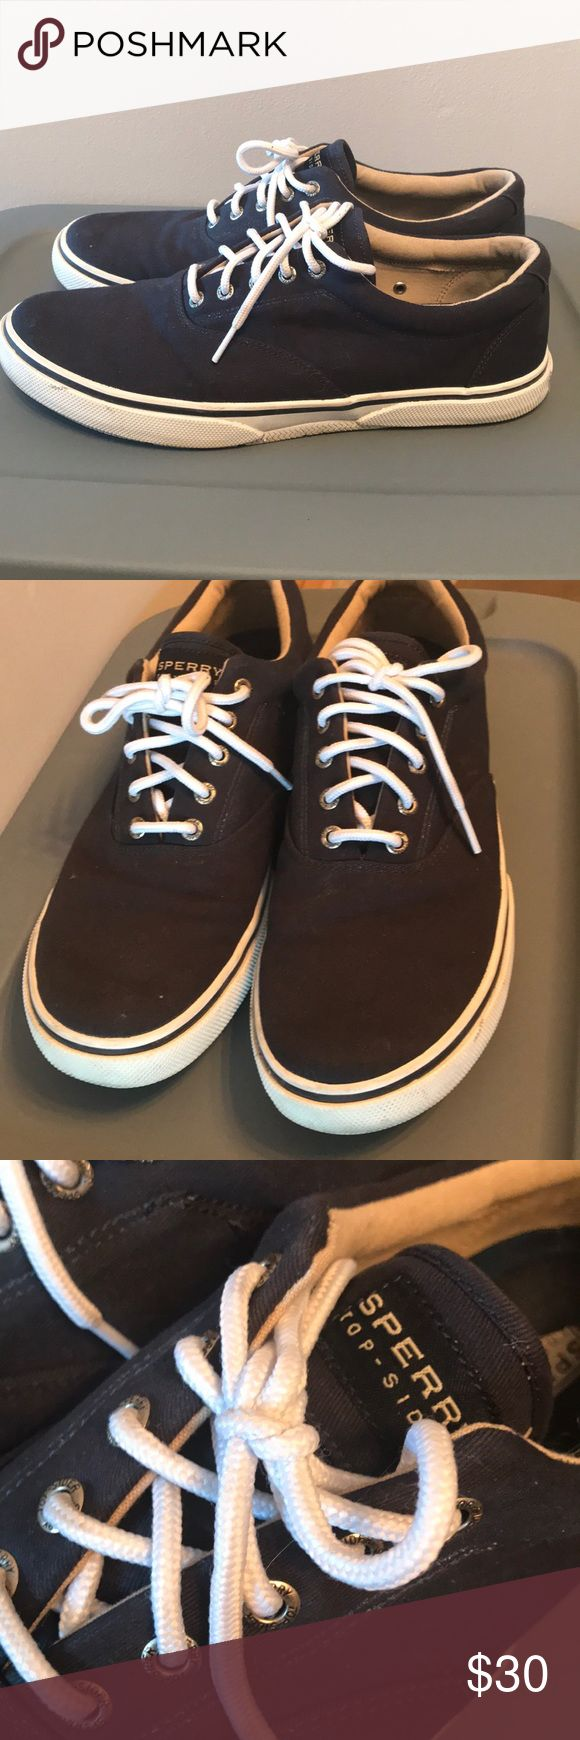 Sperry Navy Blue Shoes Sperry Top-Sider men's navy blue tennis shoes. Excellent condition, worn minimally Sperry Top-Sider Shoes Loafers & Slip-Ons